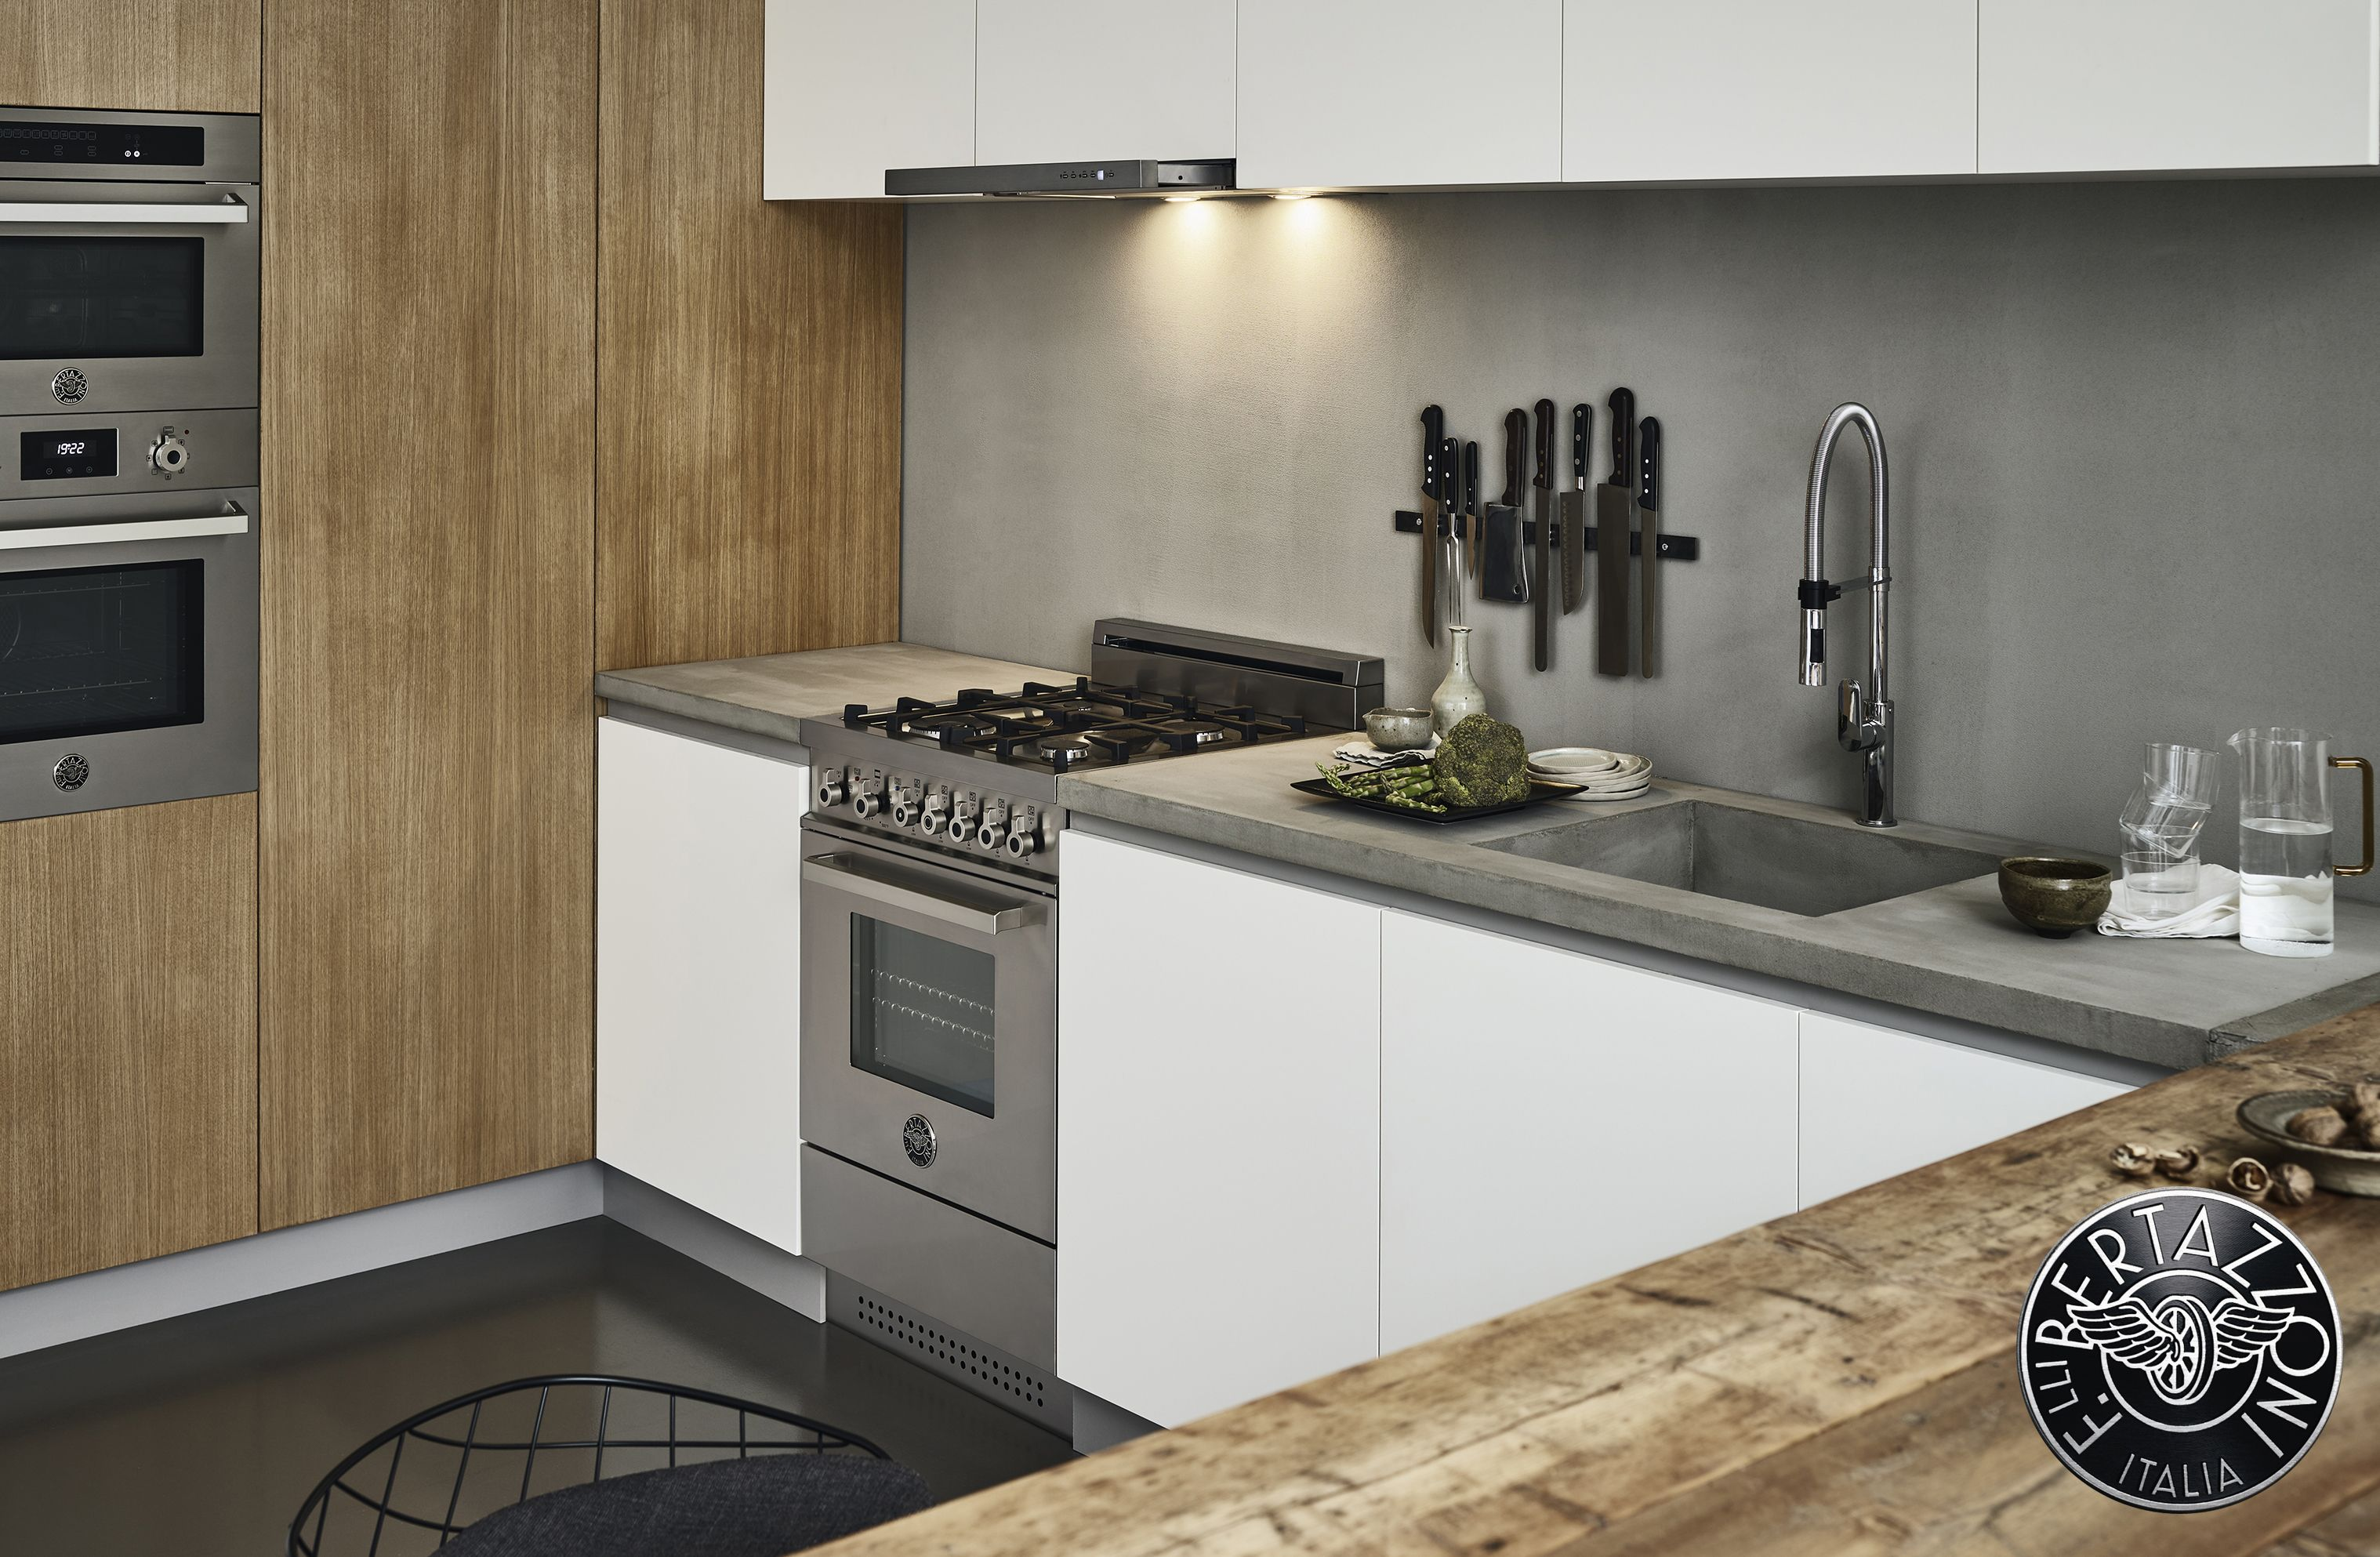 Find Inspiration For Your Next Contemporary Kitchen Renovation With Bertazzoni S New Profess Kitchen Suite Contemporary Kitchen Renovation Contemporary Kitchen